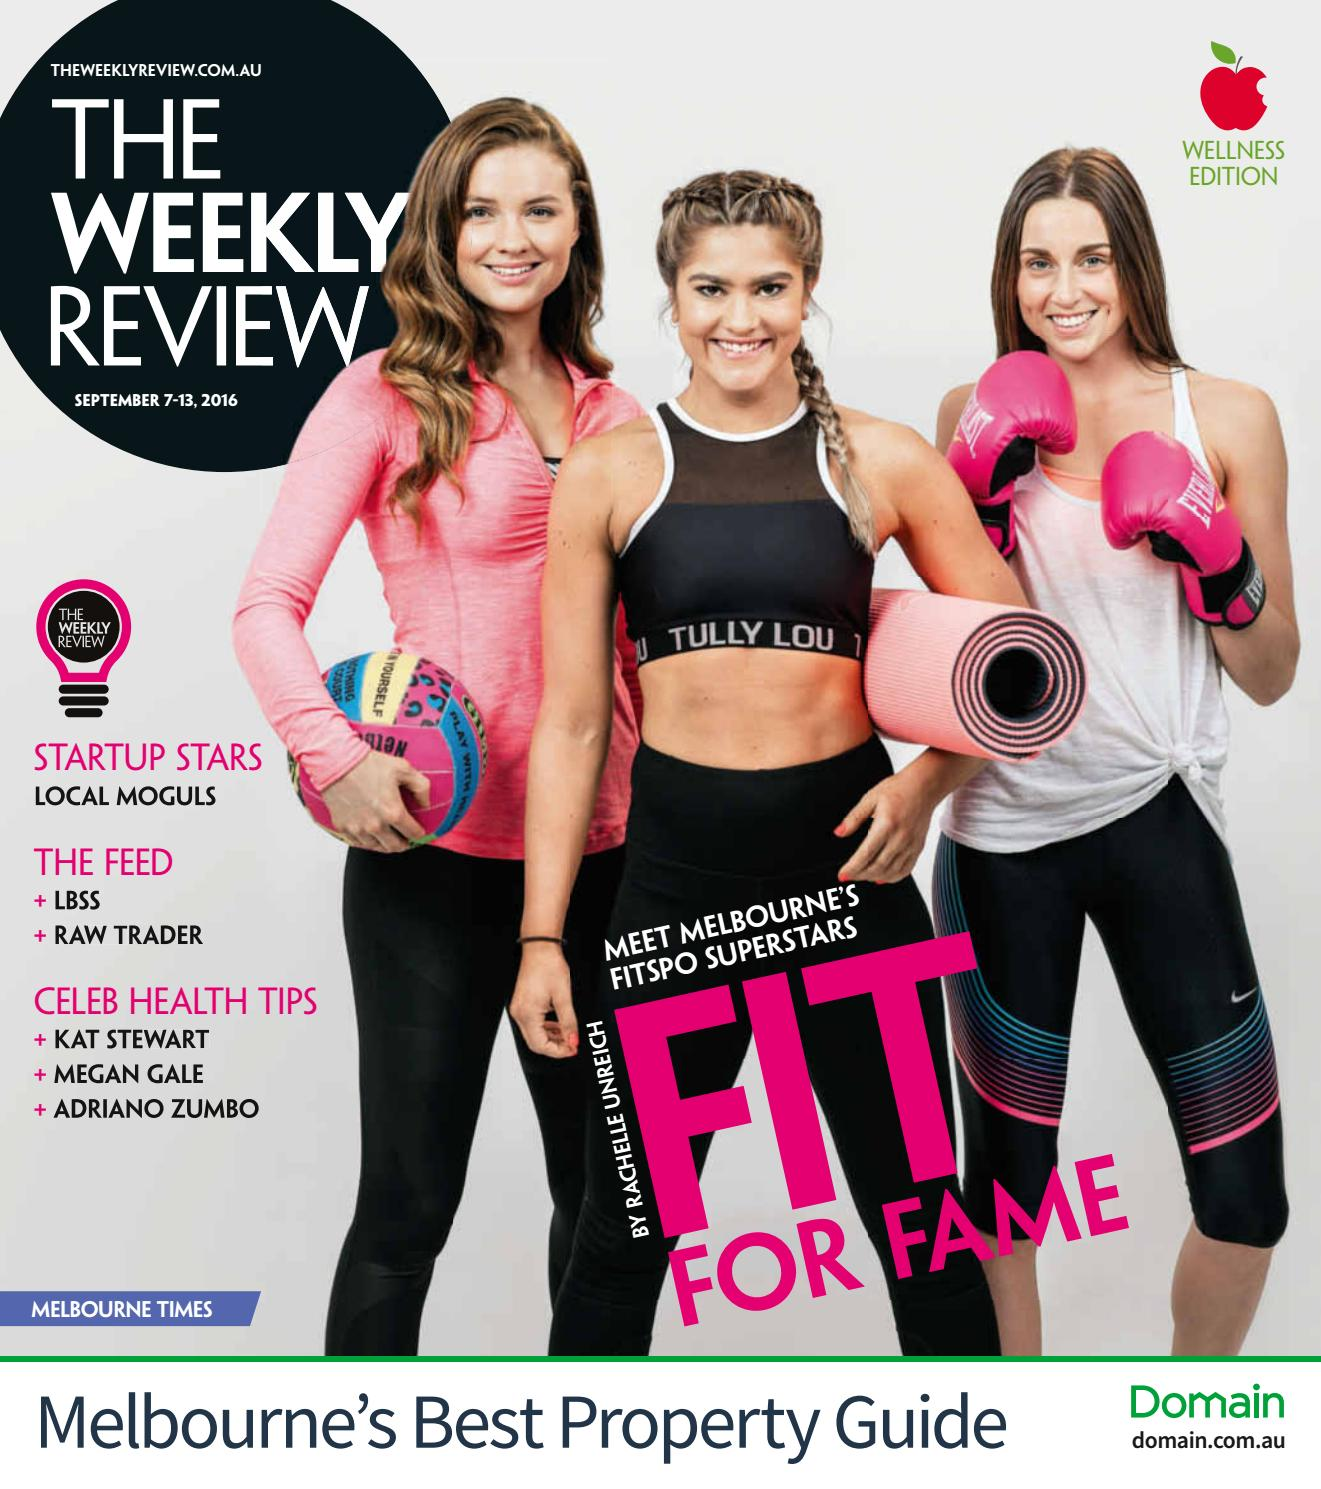 c79774e3115b3 The Weekly Review Melbourne Times by The Weekly Review - issuu